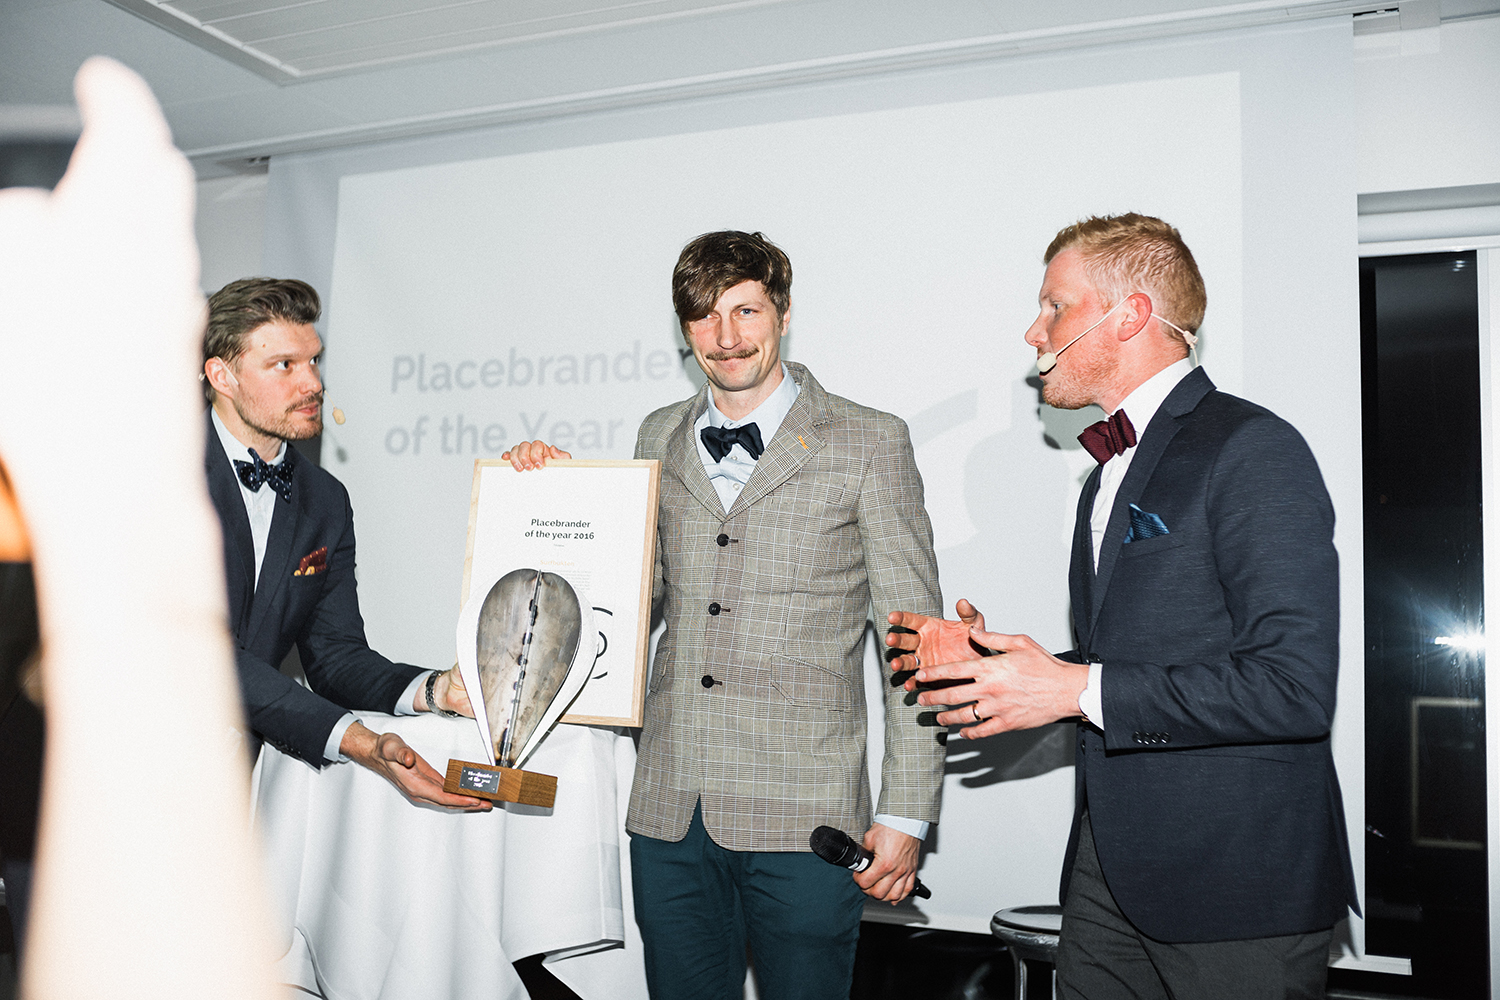 surfbukten_placebrander_of_the_year_02